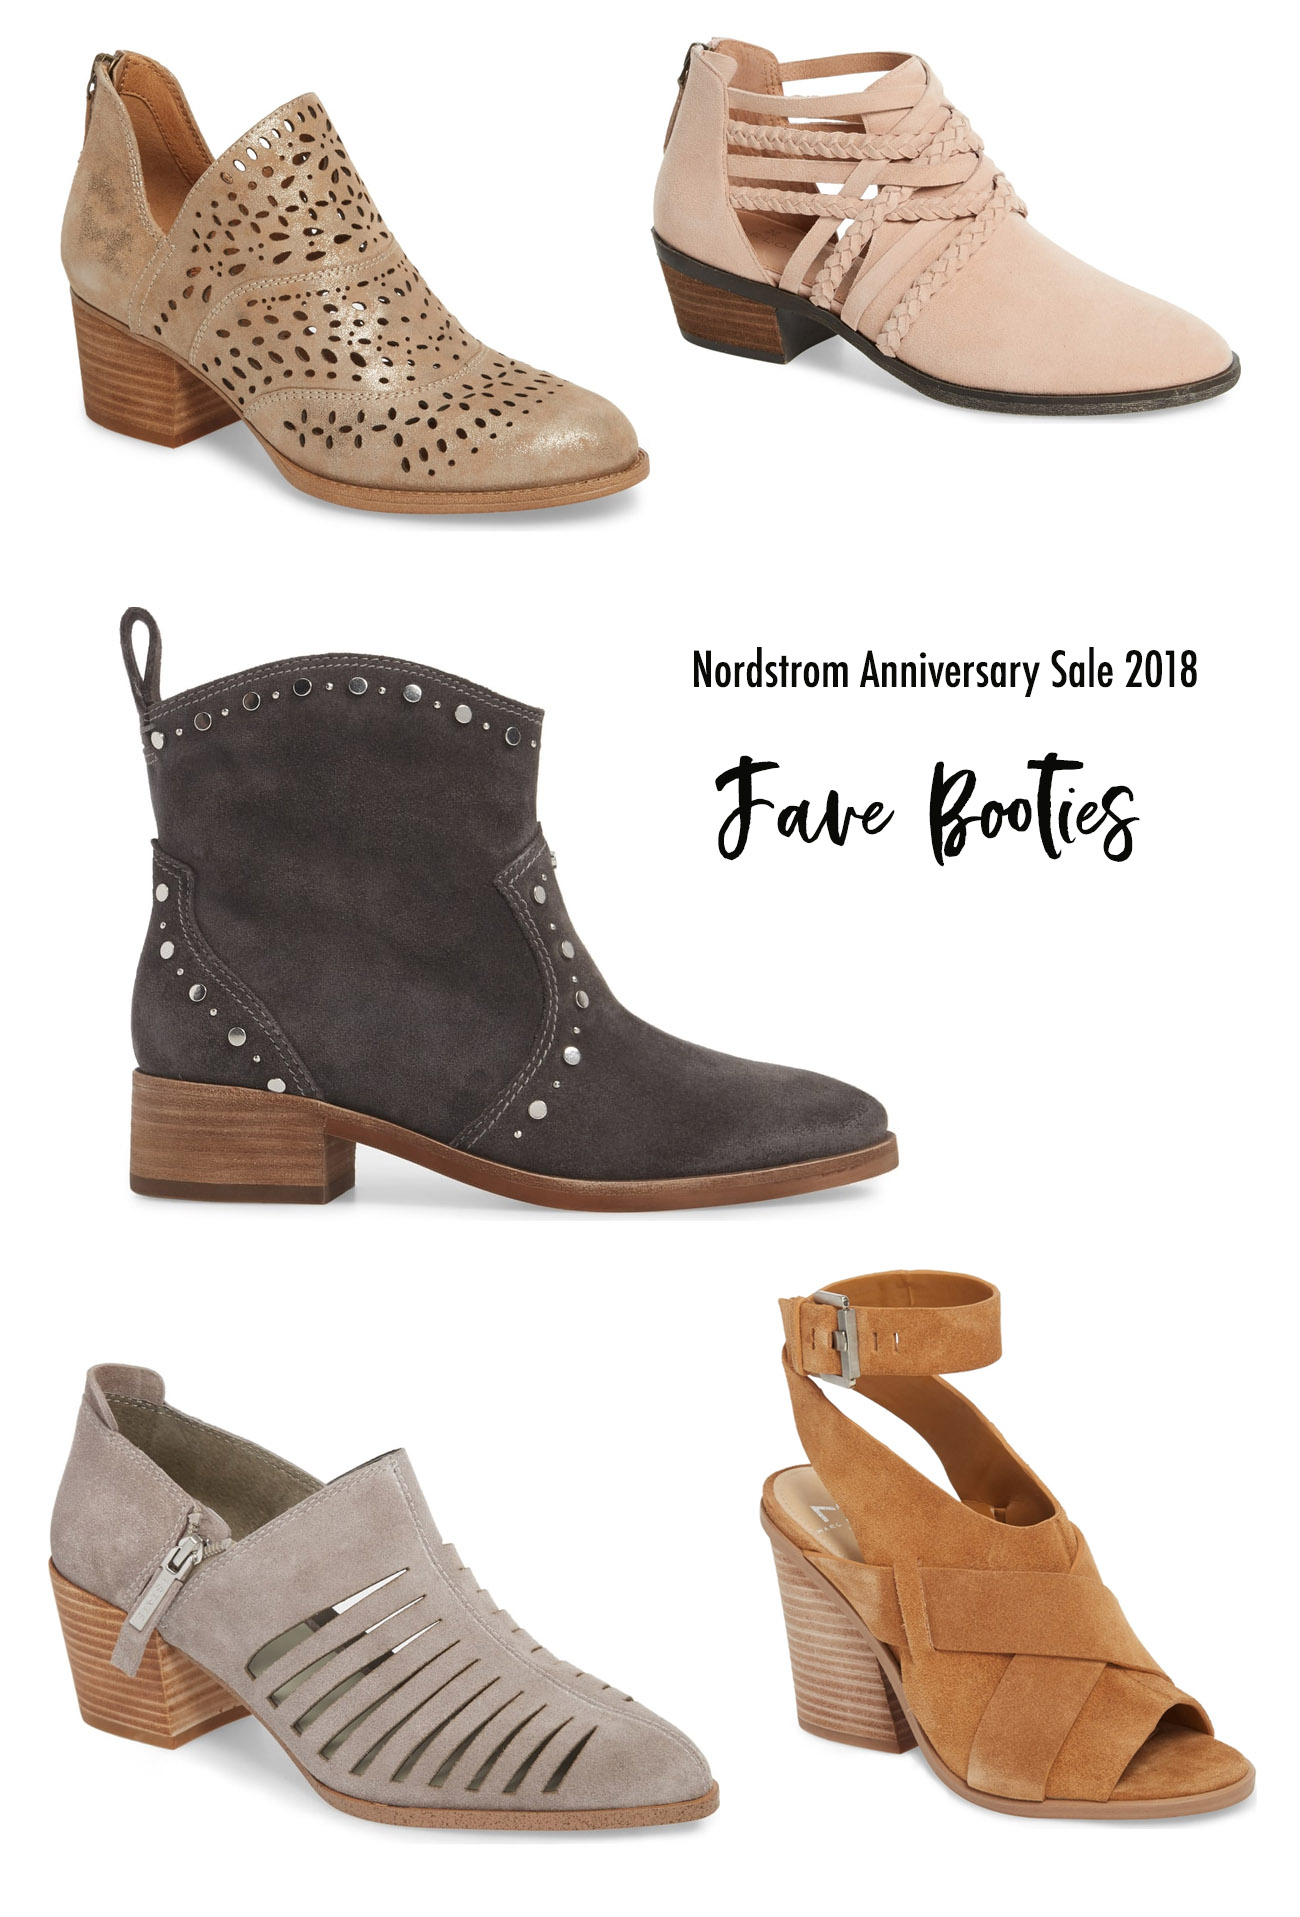 696a5cb465d1 Our Favorite Shoes from the 2018 Nordstrom Anniversary Sale - Green ...